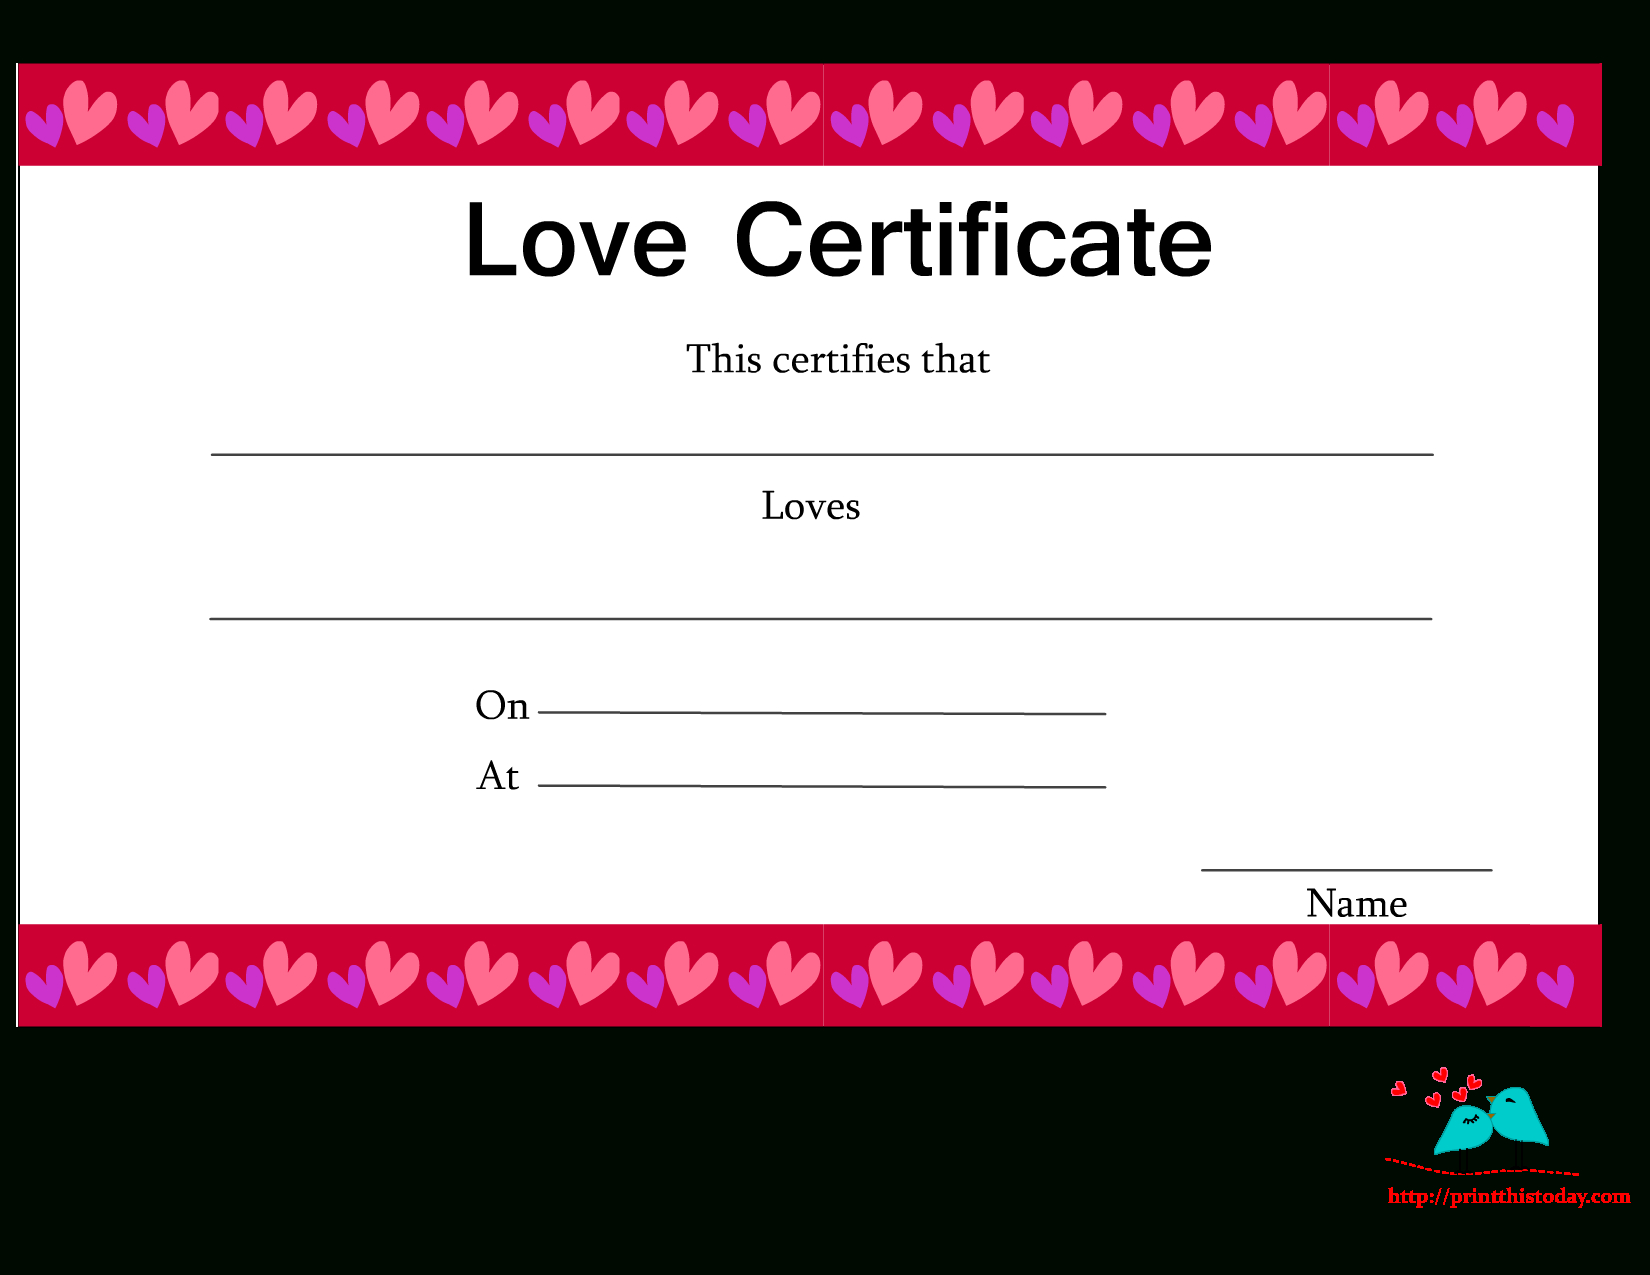 Love Certificate Templates ] - Free Printable Love Inside Love Certificate Templates